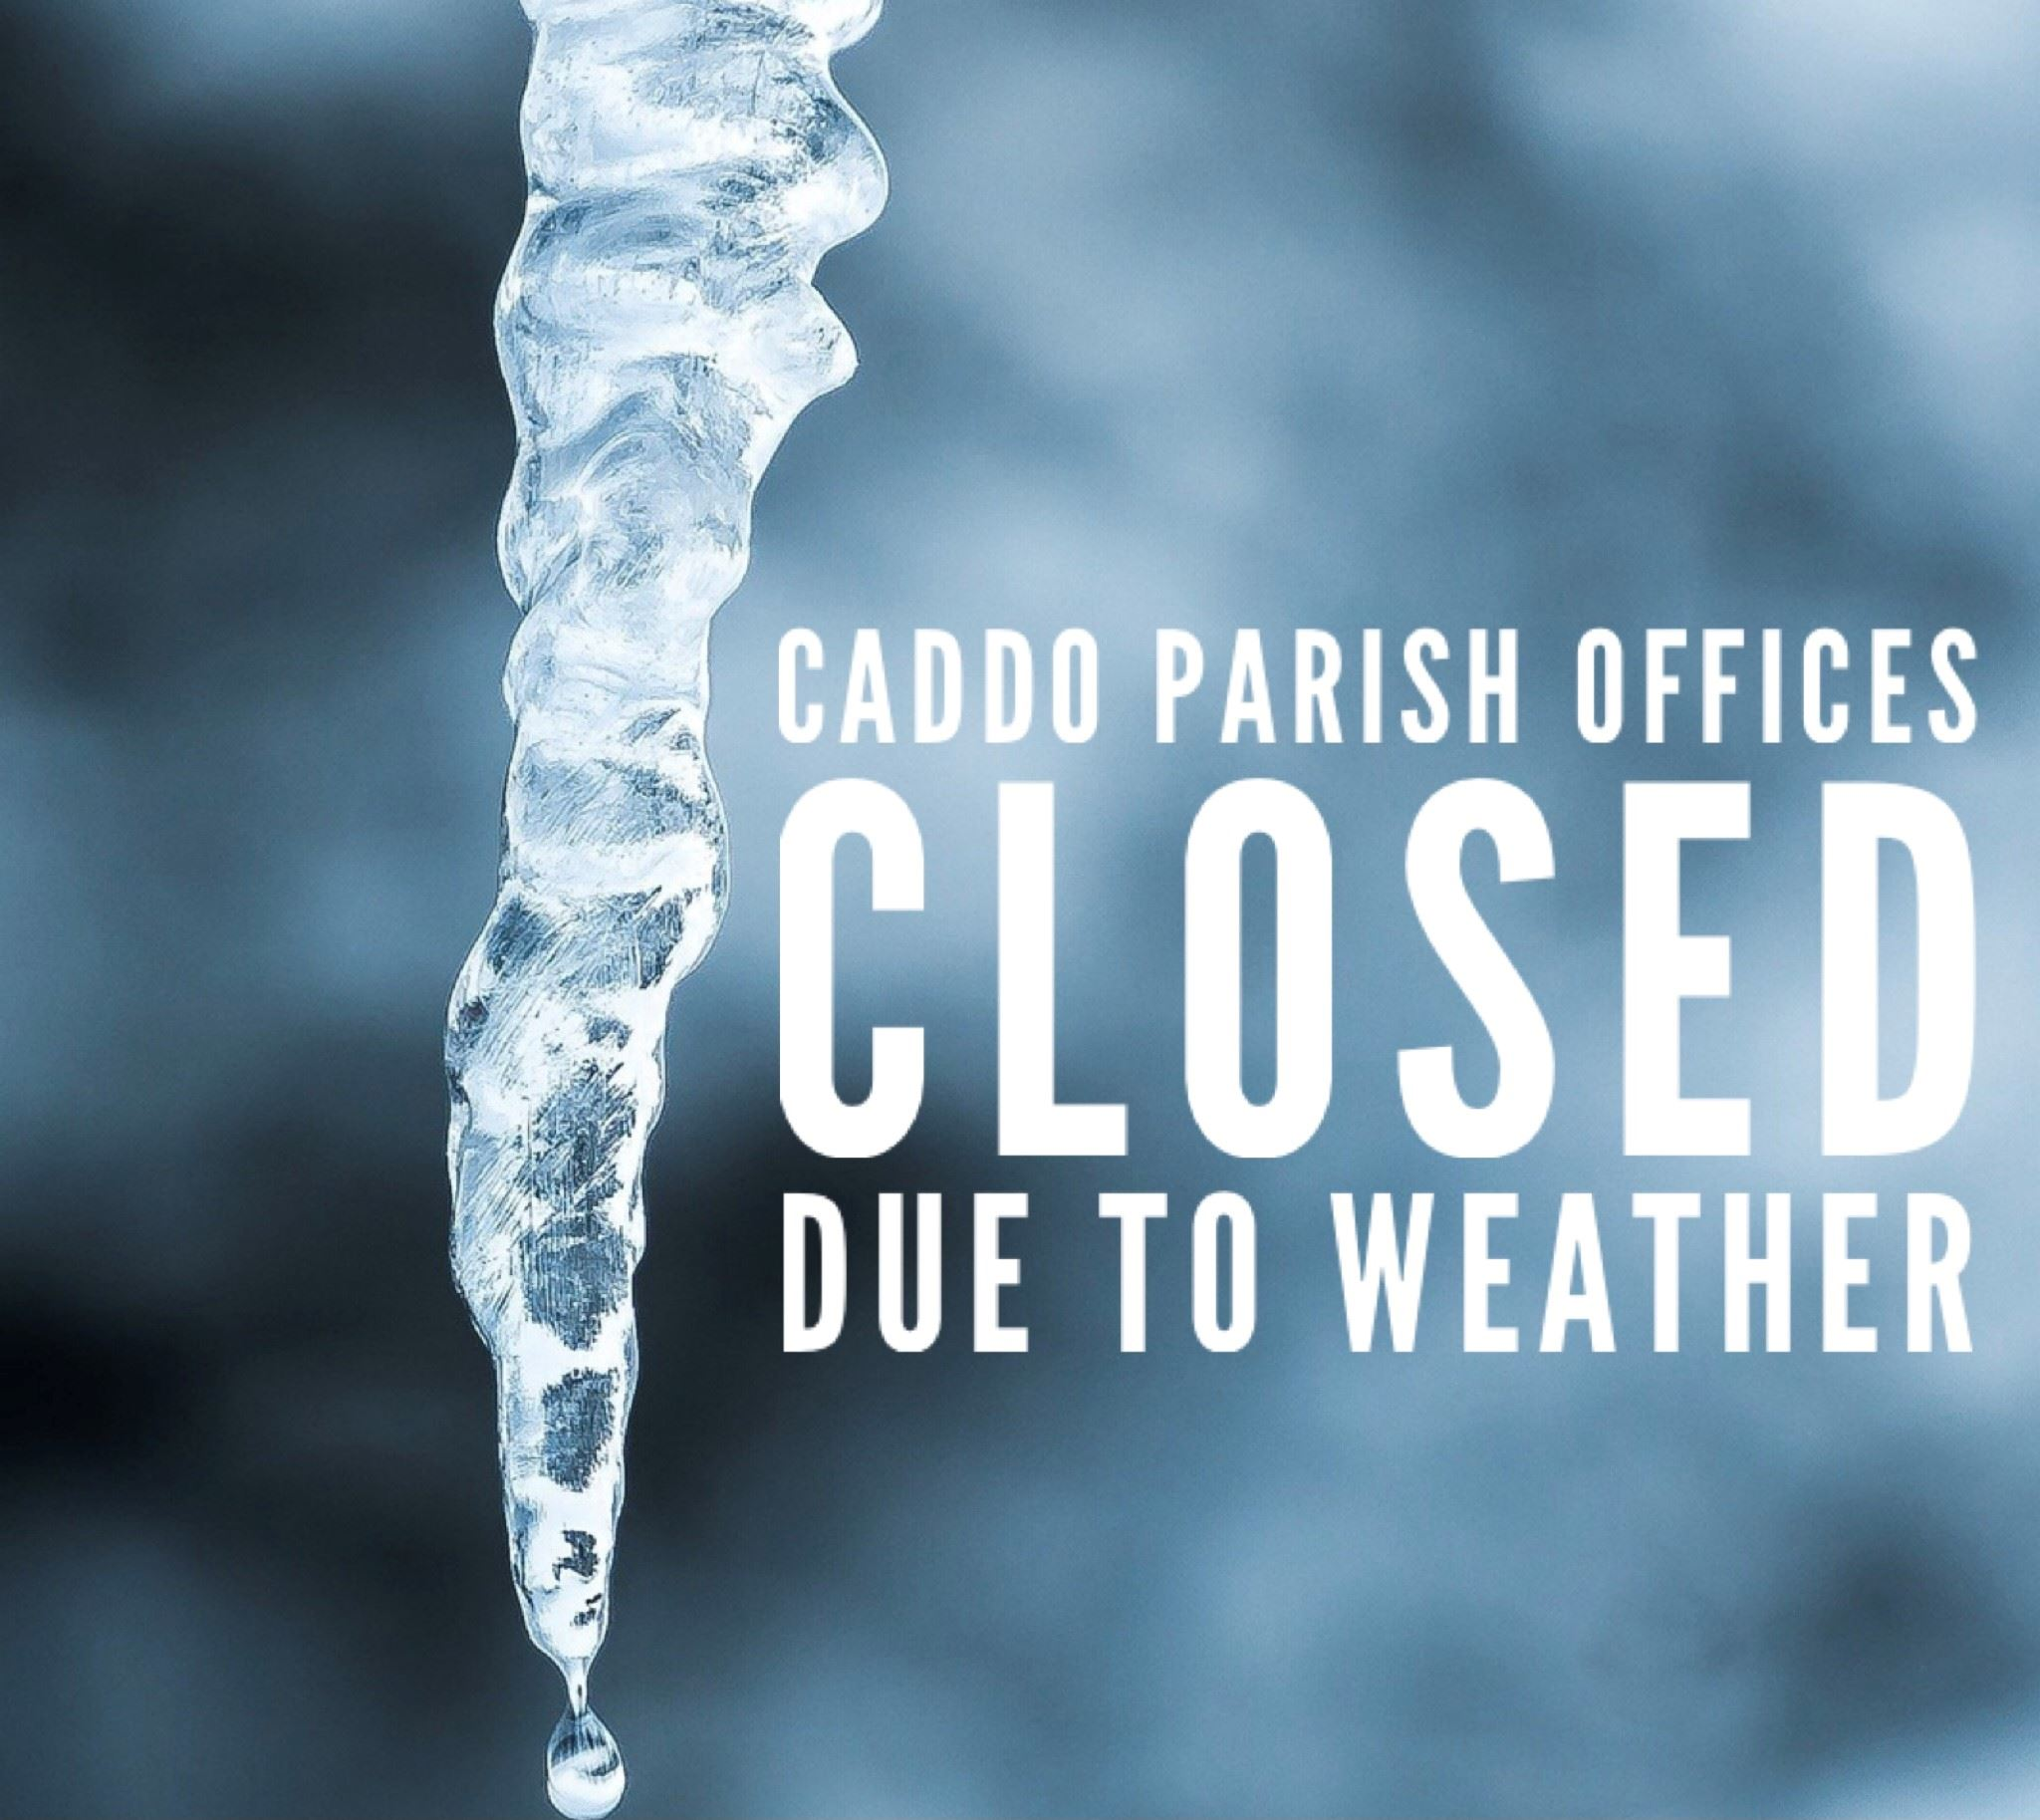 Weather Office Closure